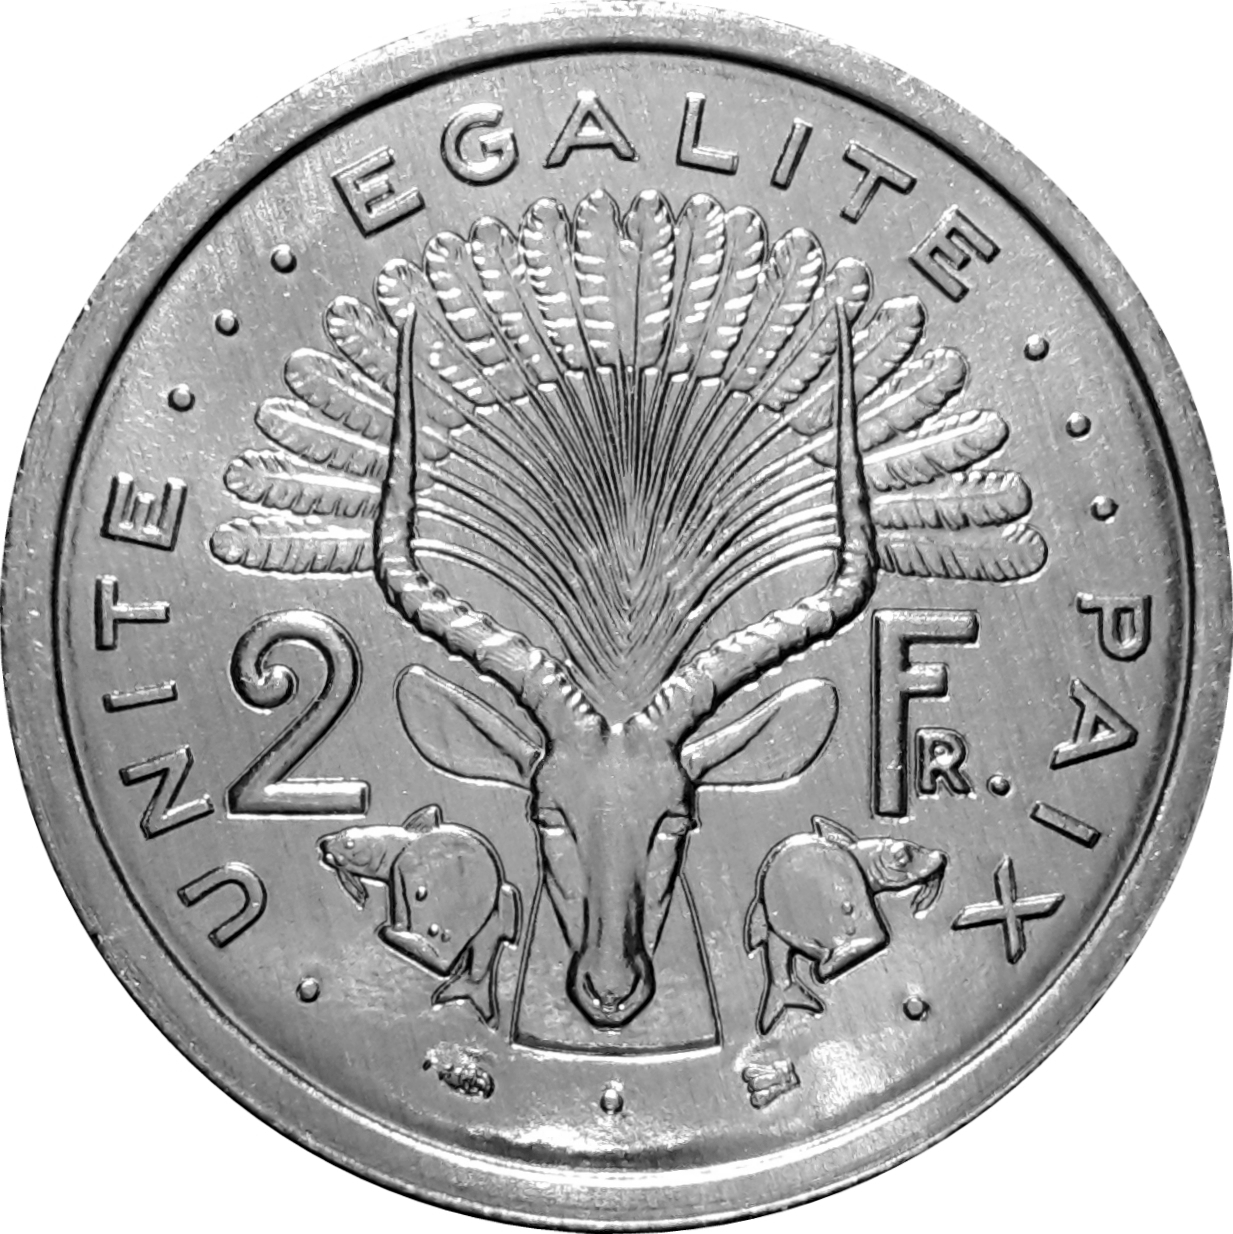 new Coins 11.2020